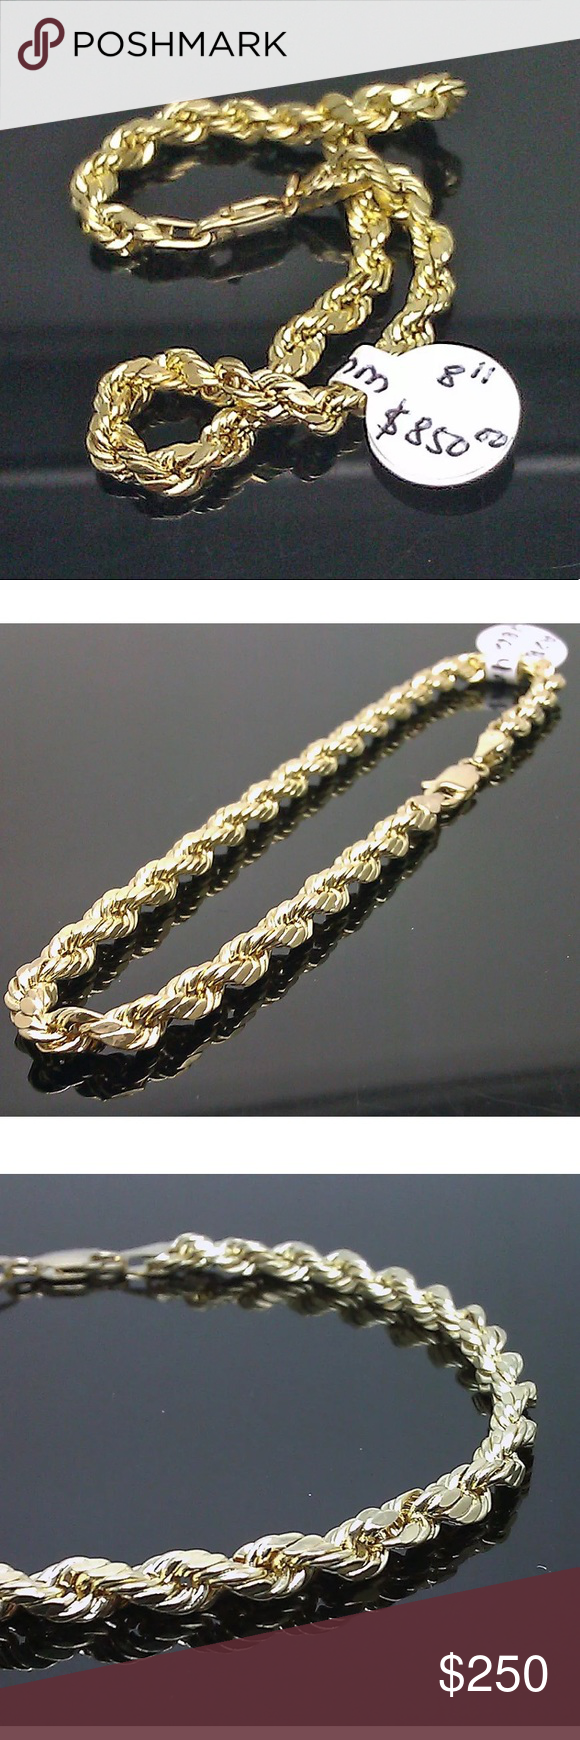 Nwt Real Gold Men S Thick Rope Bracelet 9 Inches Rope Bracelet Men Bracelets For Men Rope Bracelet